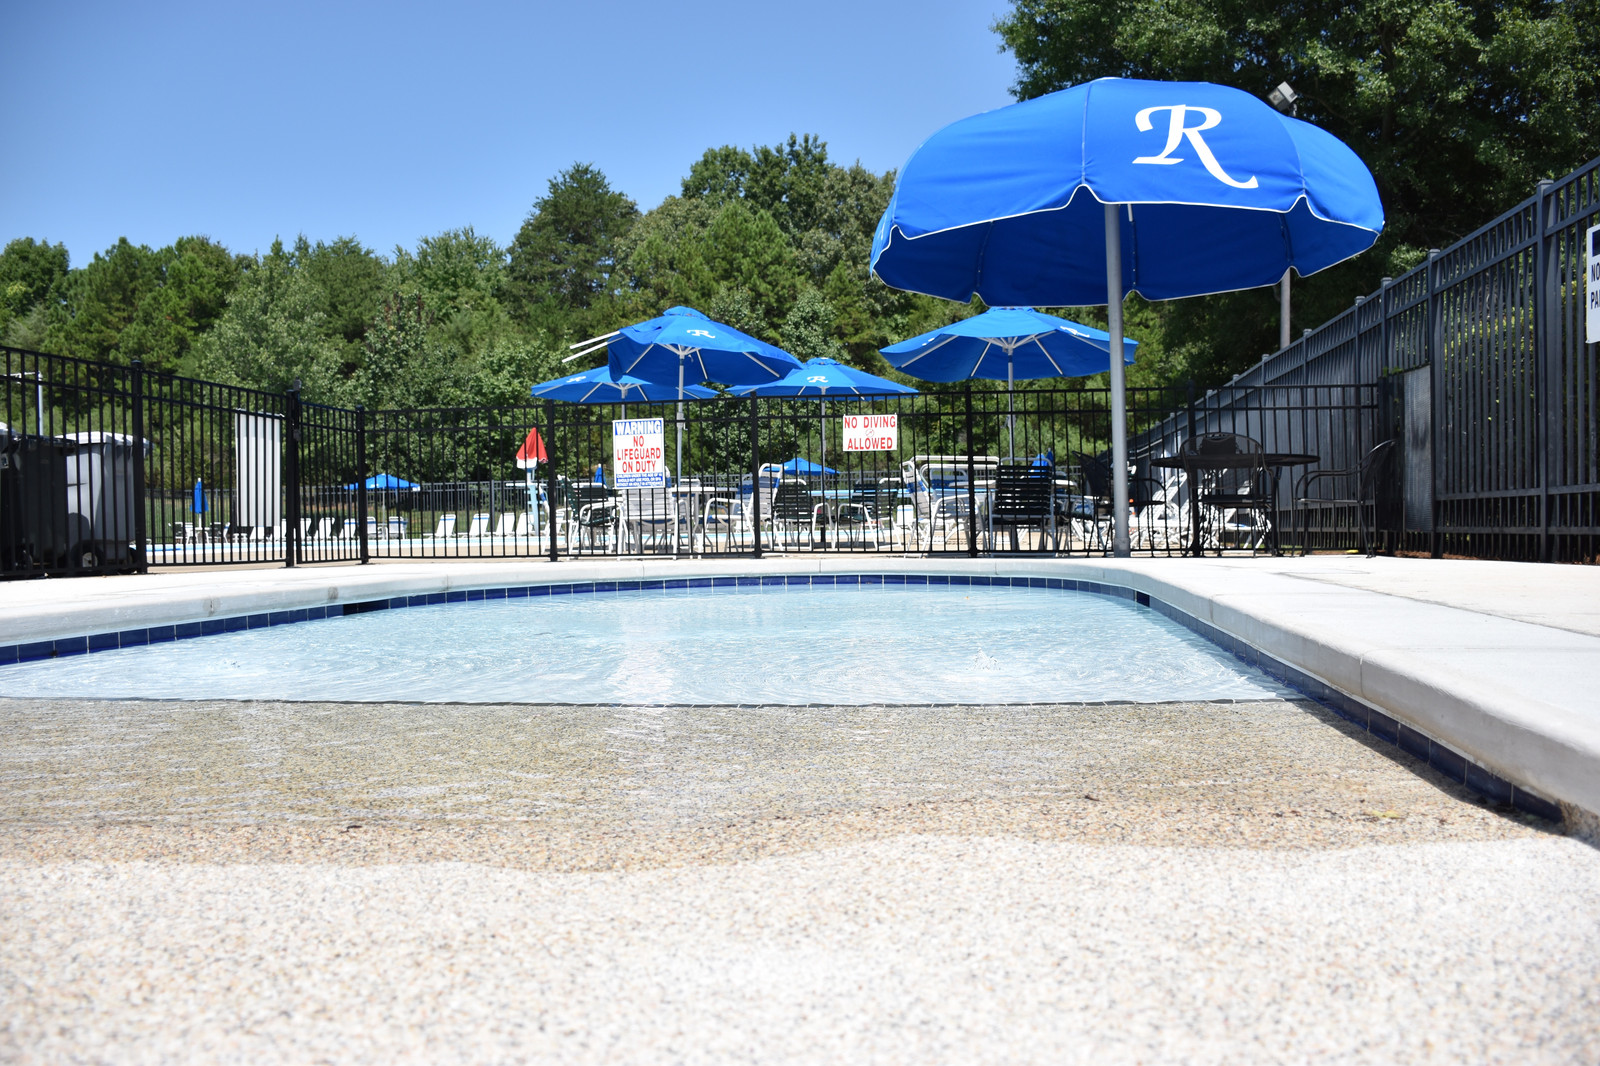 Commercial pool spa conner construction corp - Indoor swimming pools charlotte nc ...